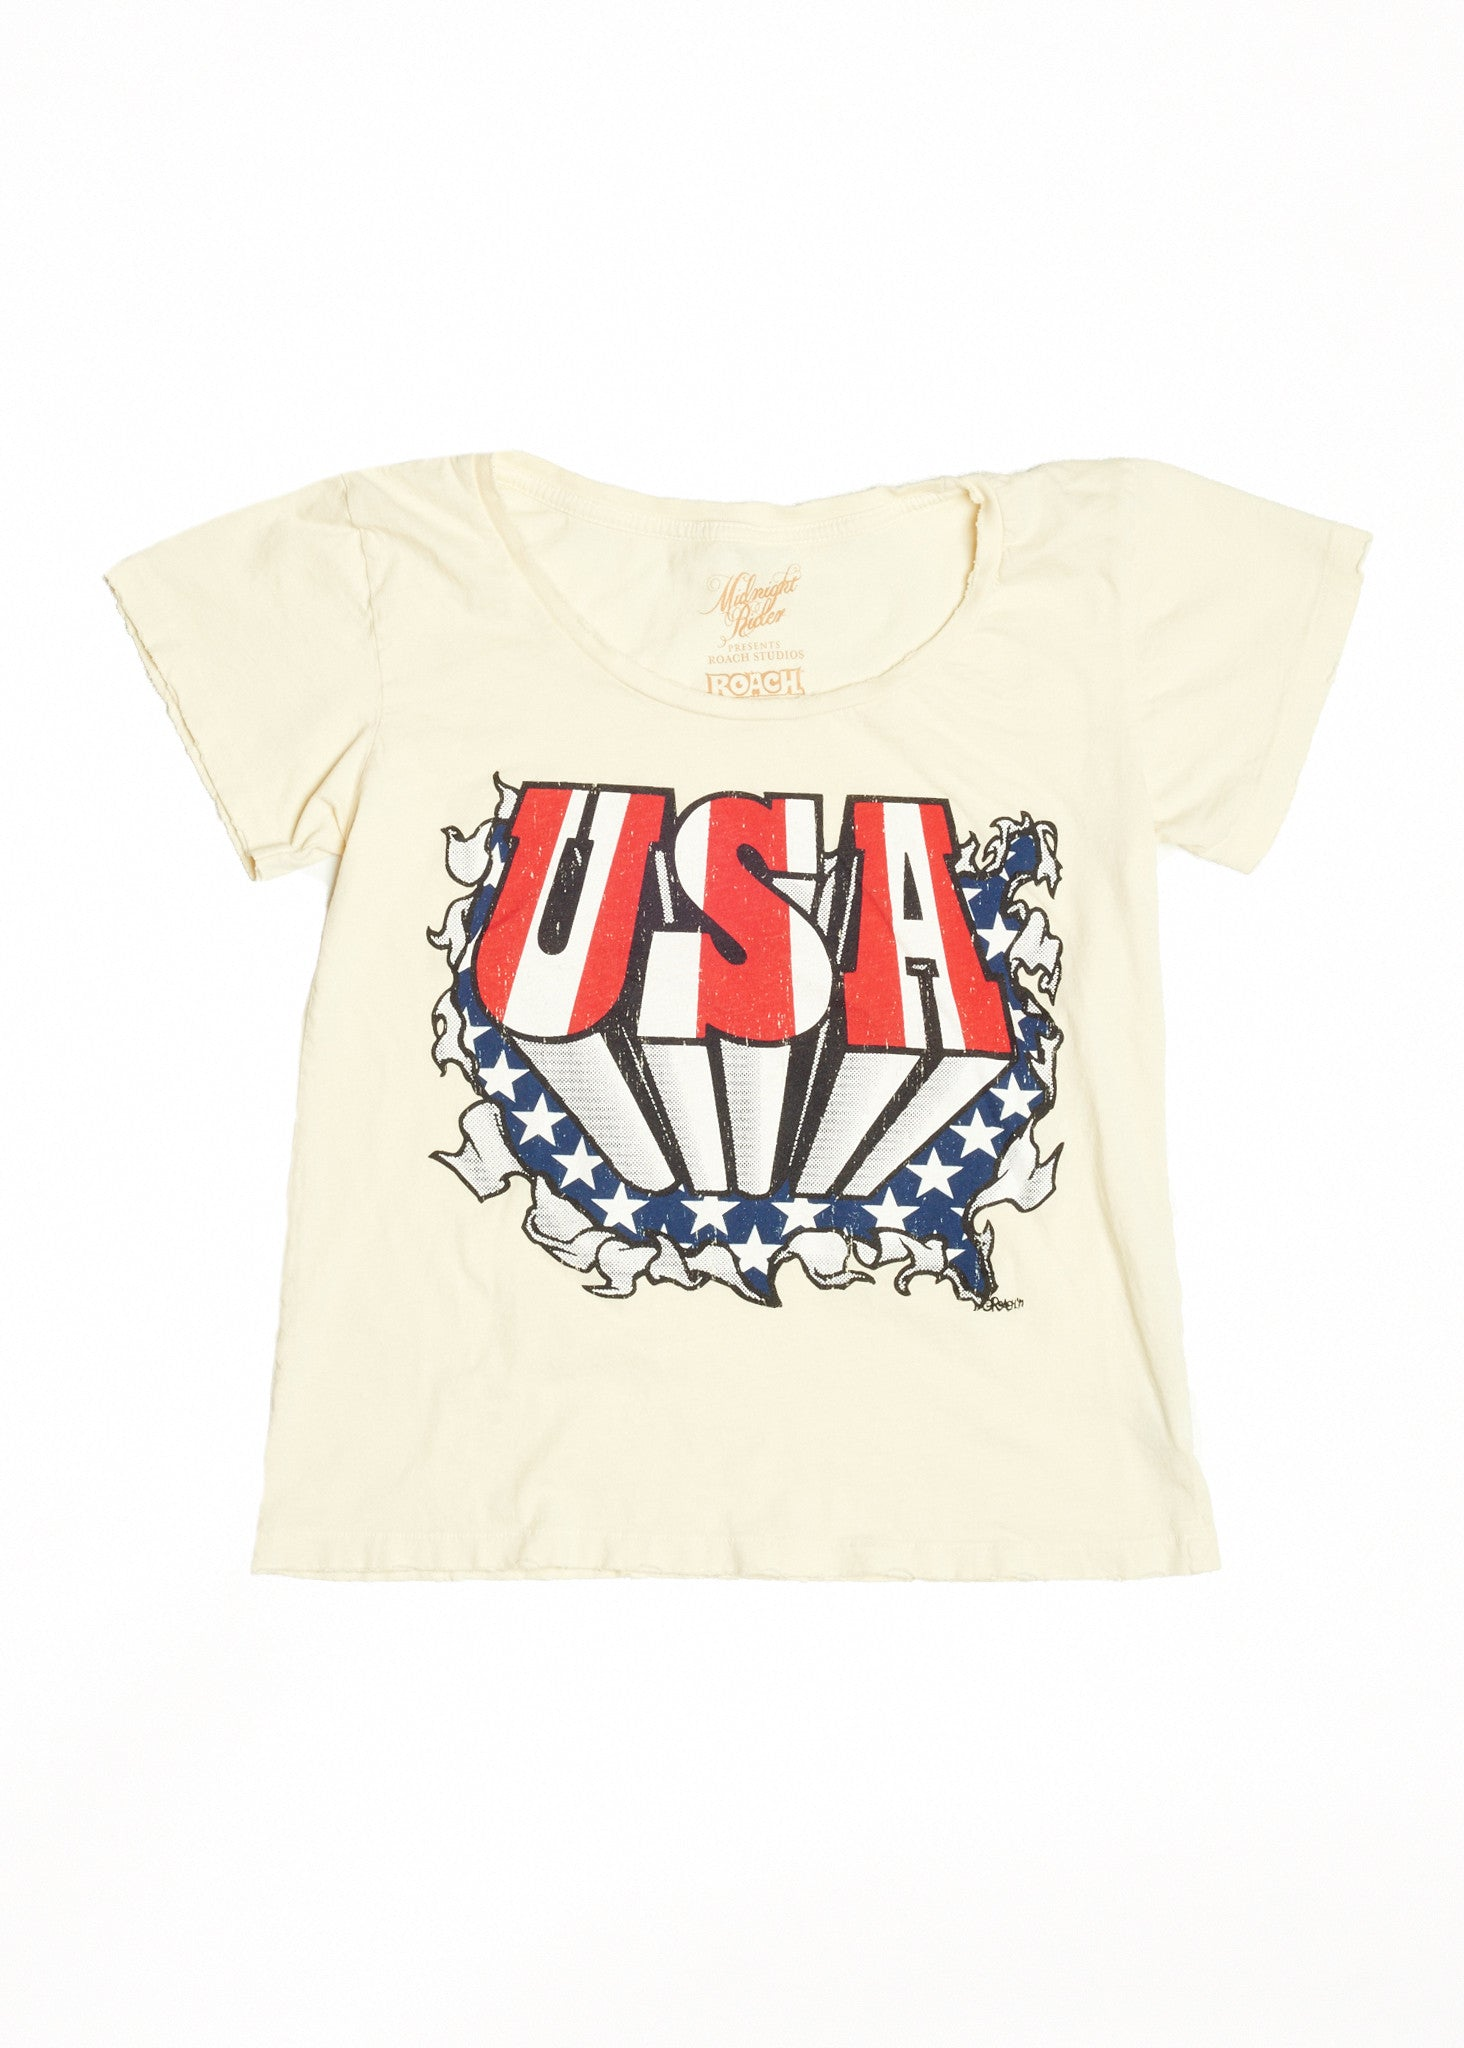 USA Women's Crew - Dirty White